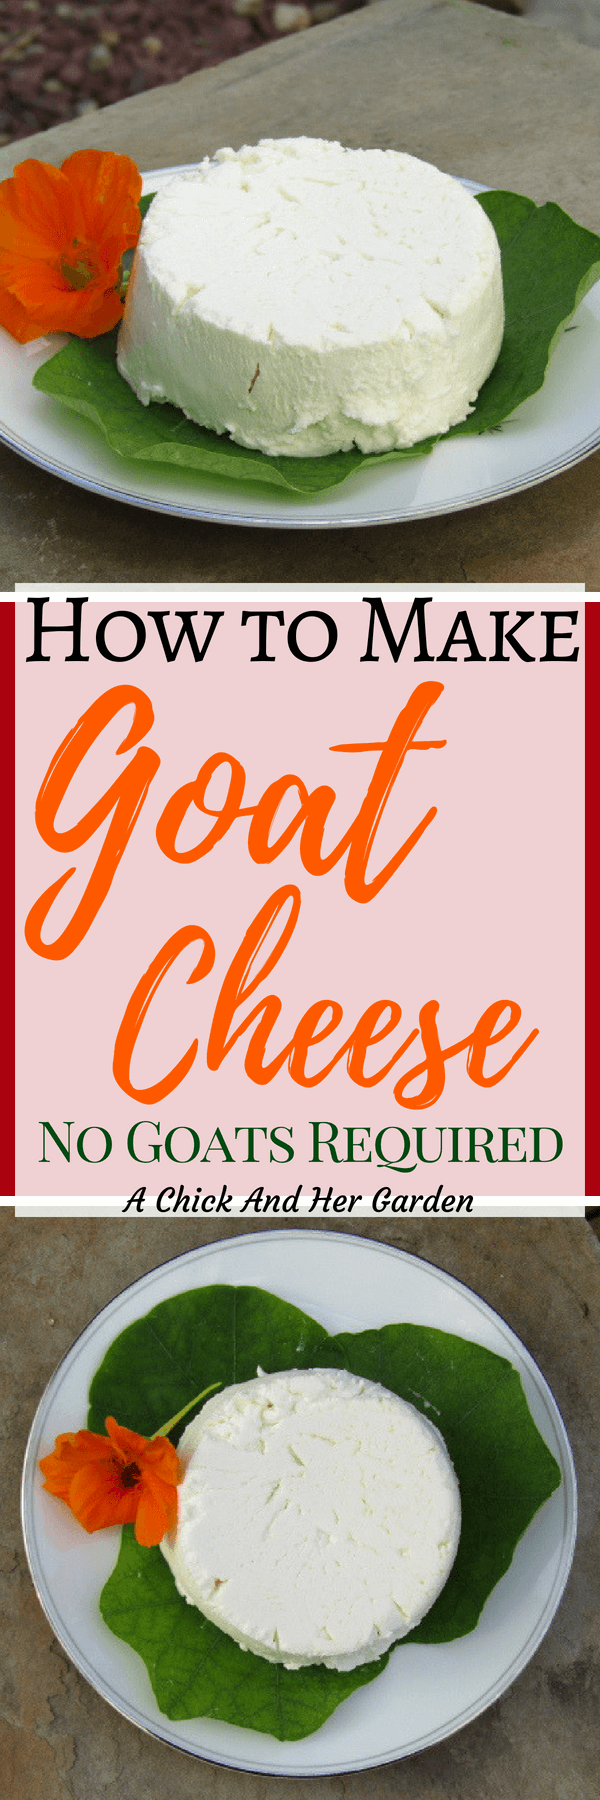 I've wanted to learn how to make goat cheese for a long time, but put it off thinking it would be hard. I was surprised how easy this was and have already made goat cheese 3 times this week! #makeyourowncheese #goatcheese #howtomakecheese #fromscratchcooking #achickandhergarden